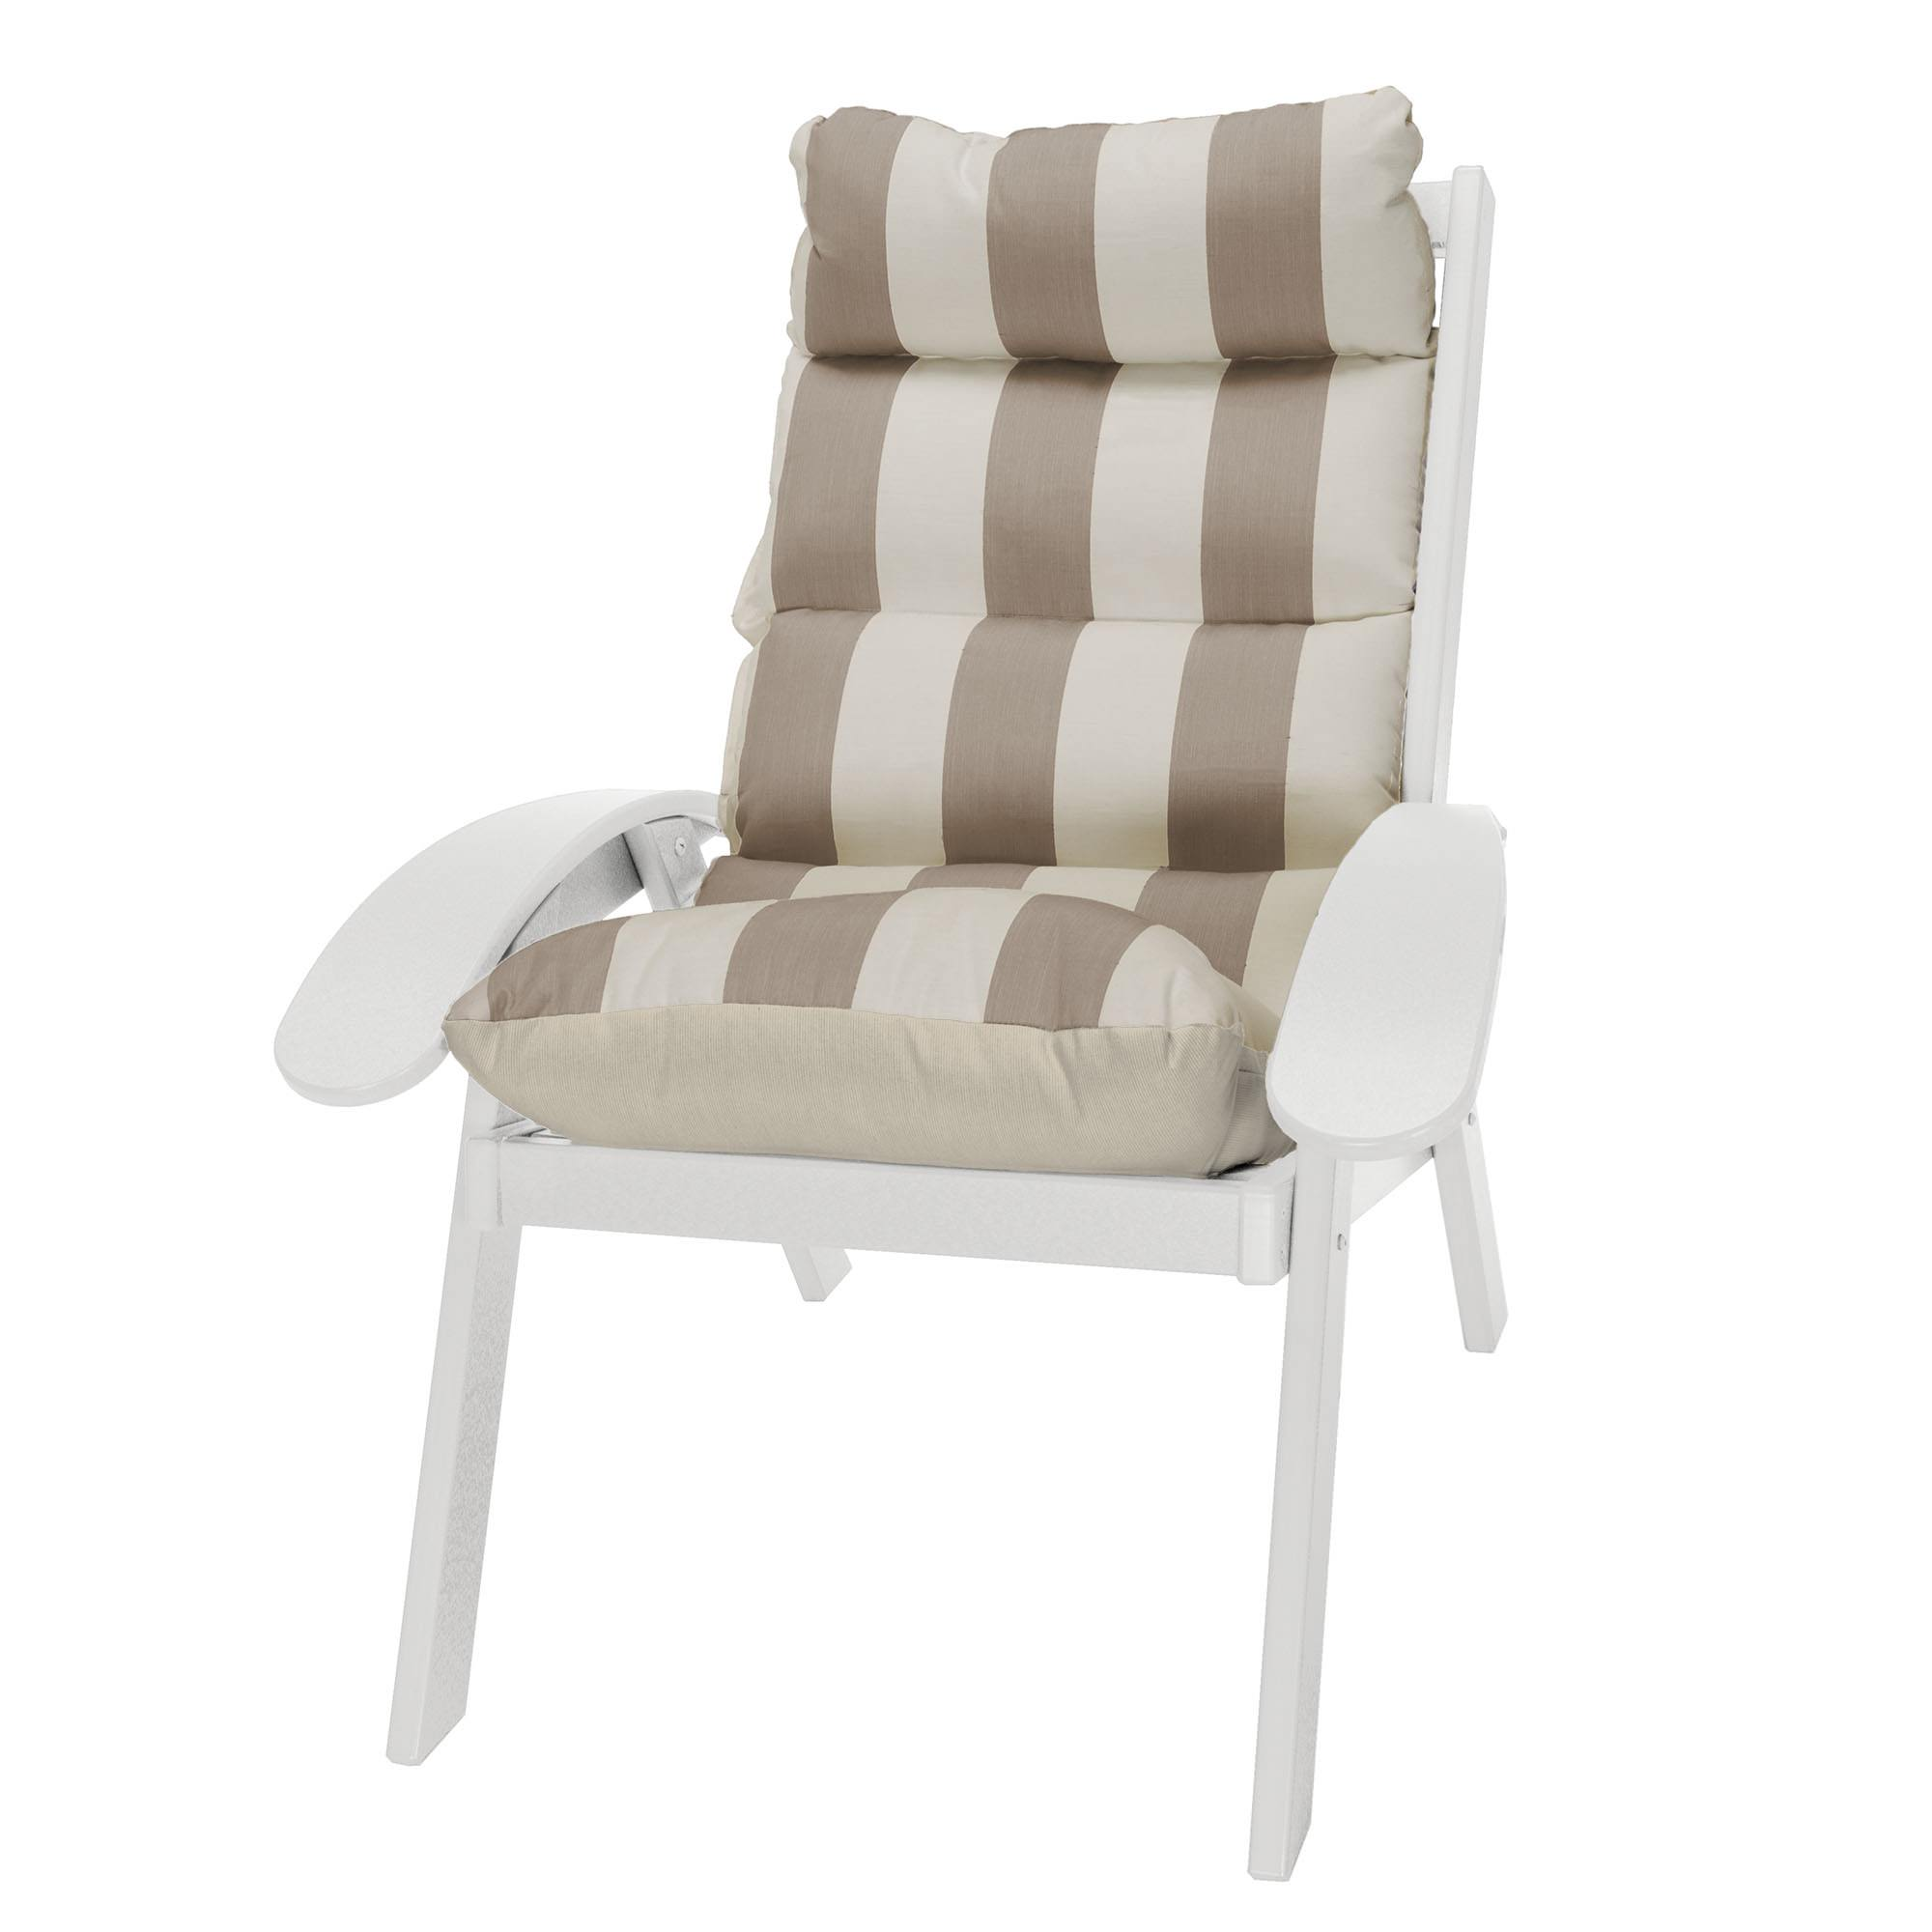 white cushion chair harley davidson table and chairs coastal on sale shop patio furniture